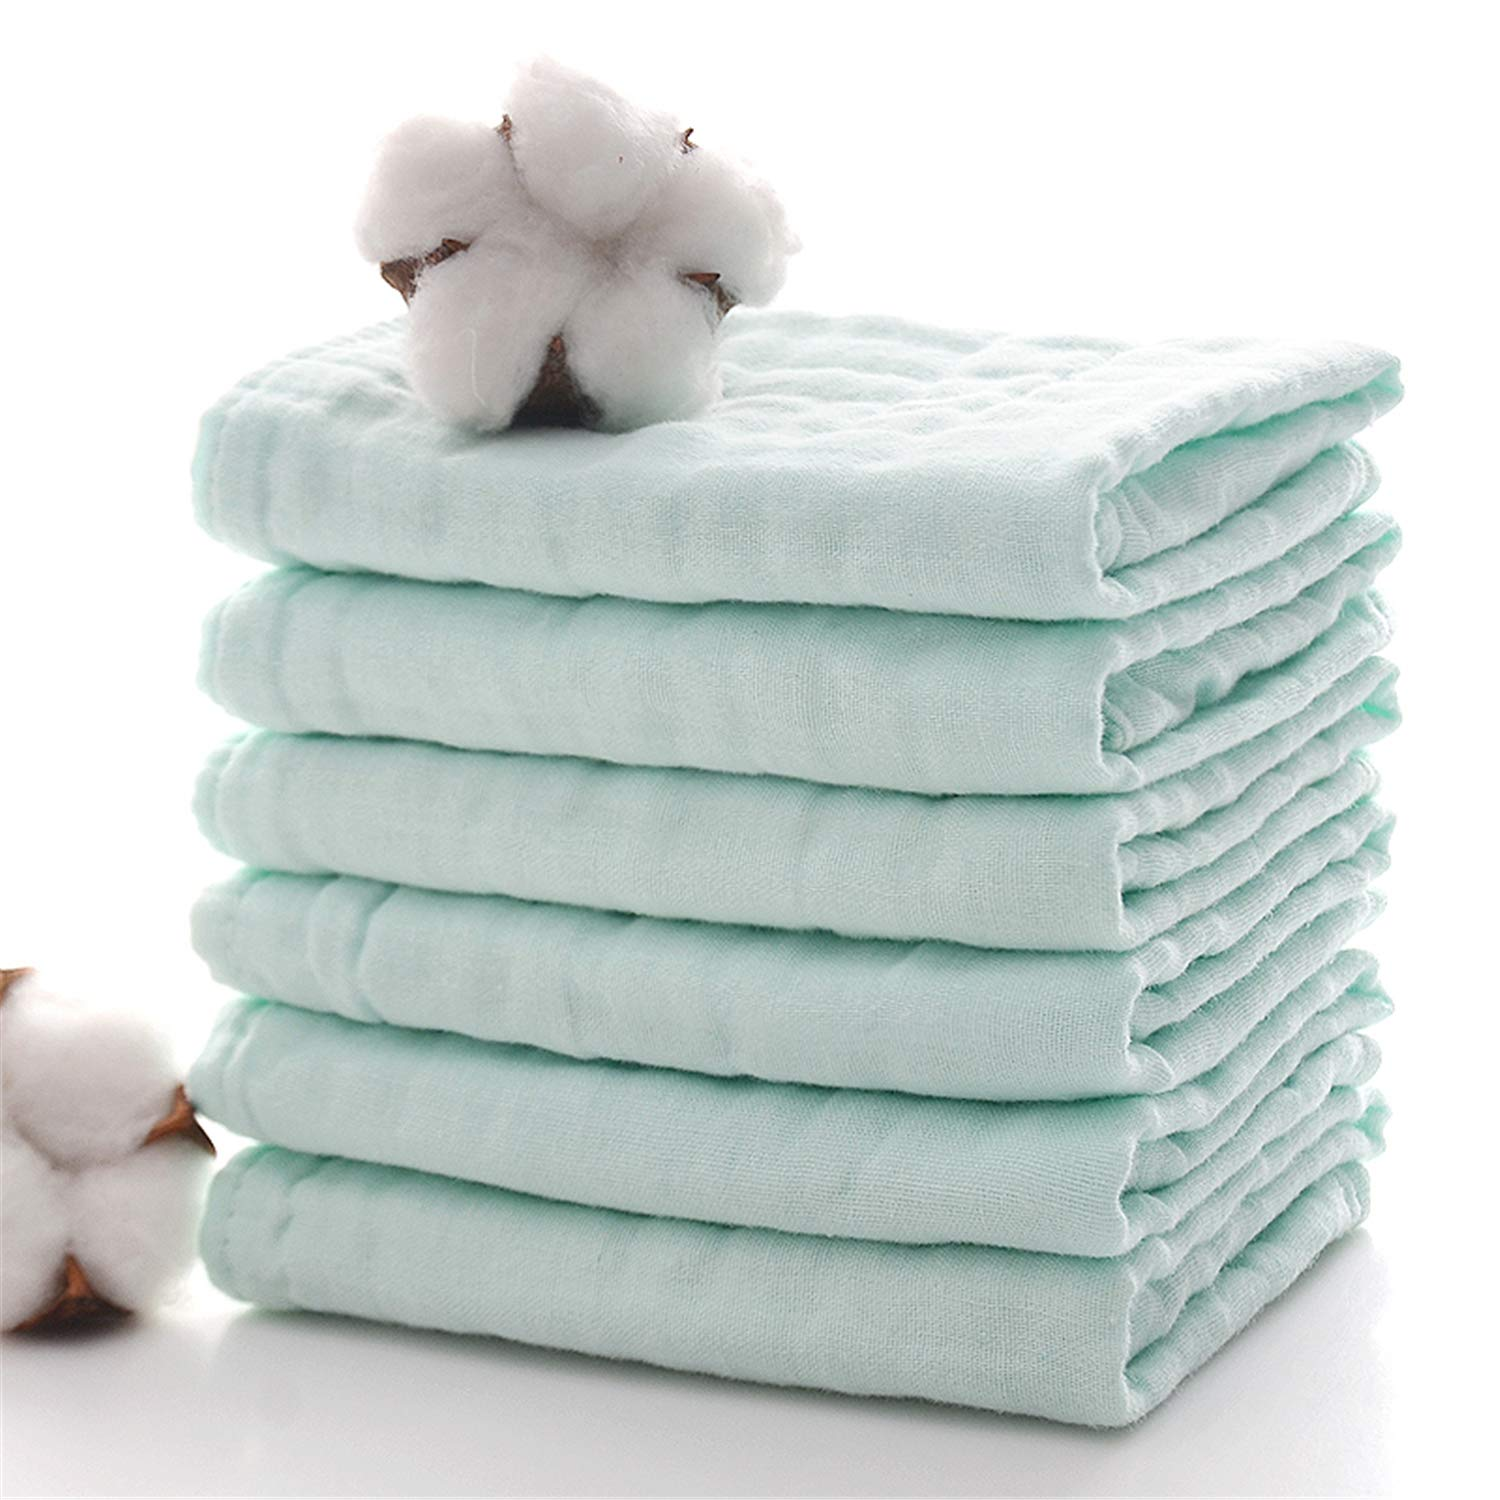 Baby Bath Washcloths by MUKIN - Muslin Face Towels for Newborn,Ultra Soft Wash Cloths for Babies | Baby Wipes for Baby Sensitive Skin | Perfect Baby Shower Gift.12''X12'' (Set of 6) Green